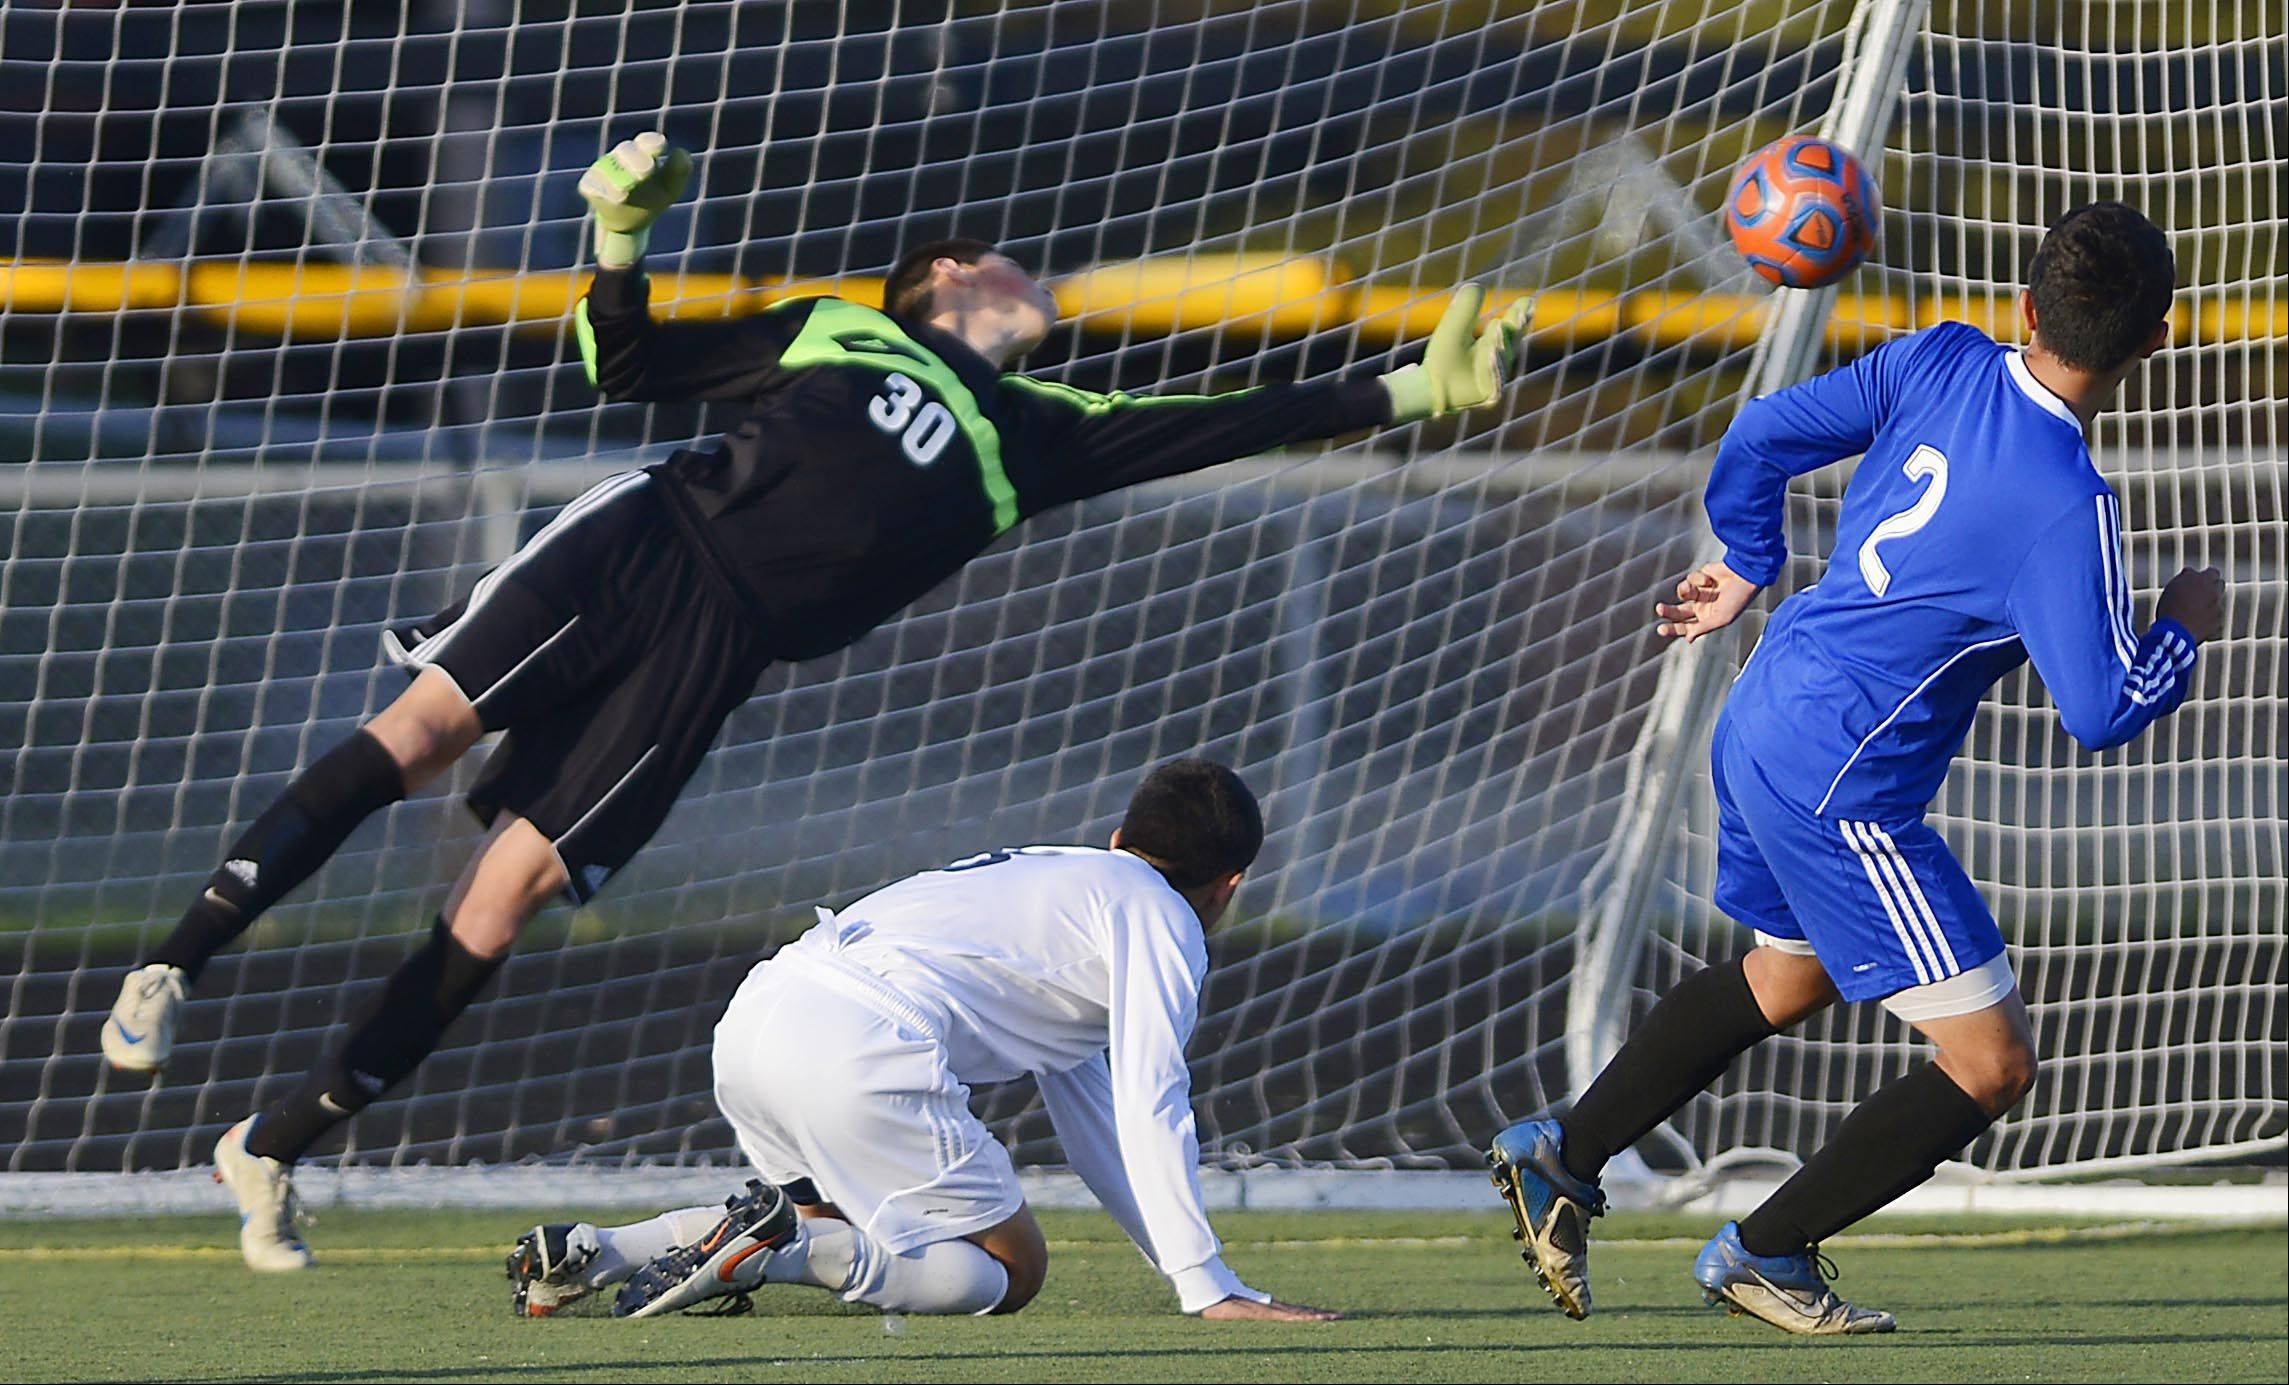 Streamwood goalkeeper Sergio Blanco reaches to block a shot by Larkin's Moises Raya Monday in Streamwood.